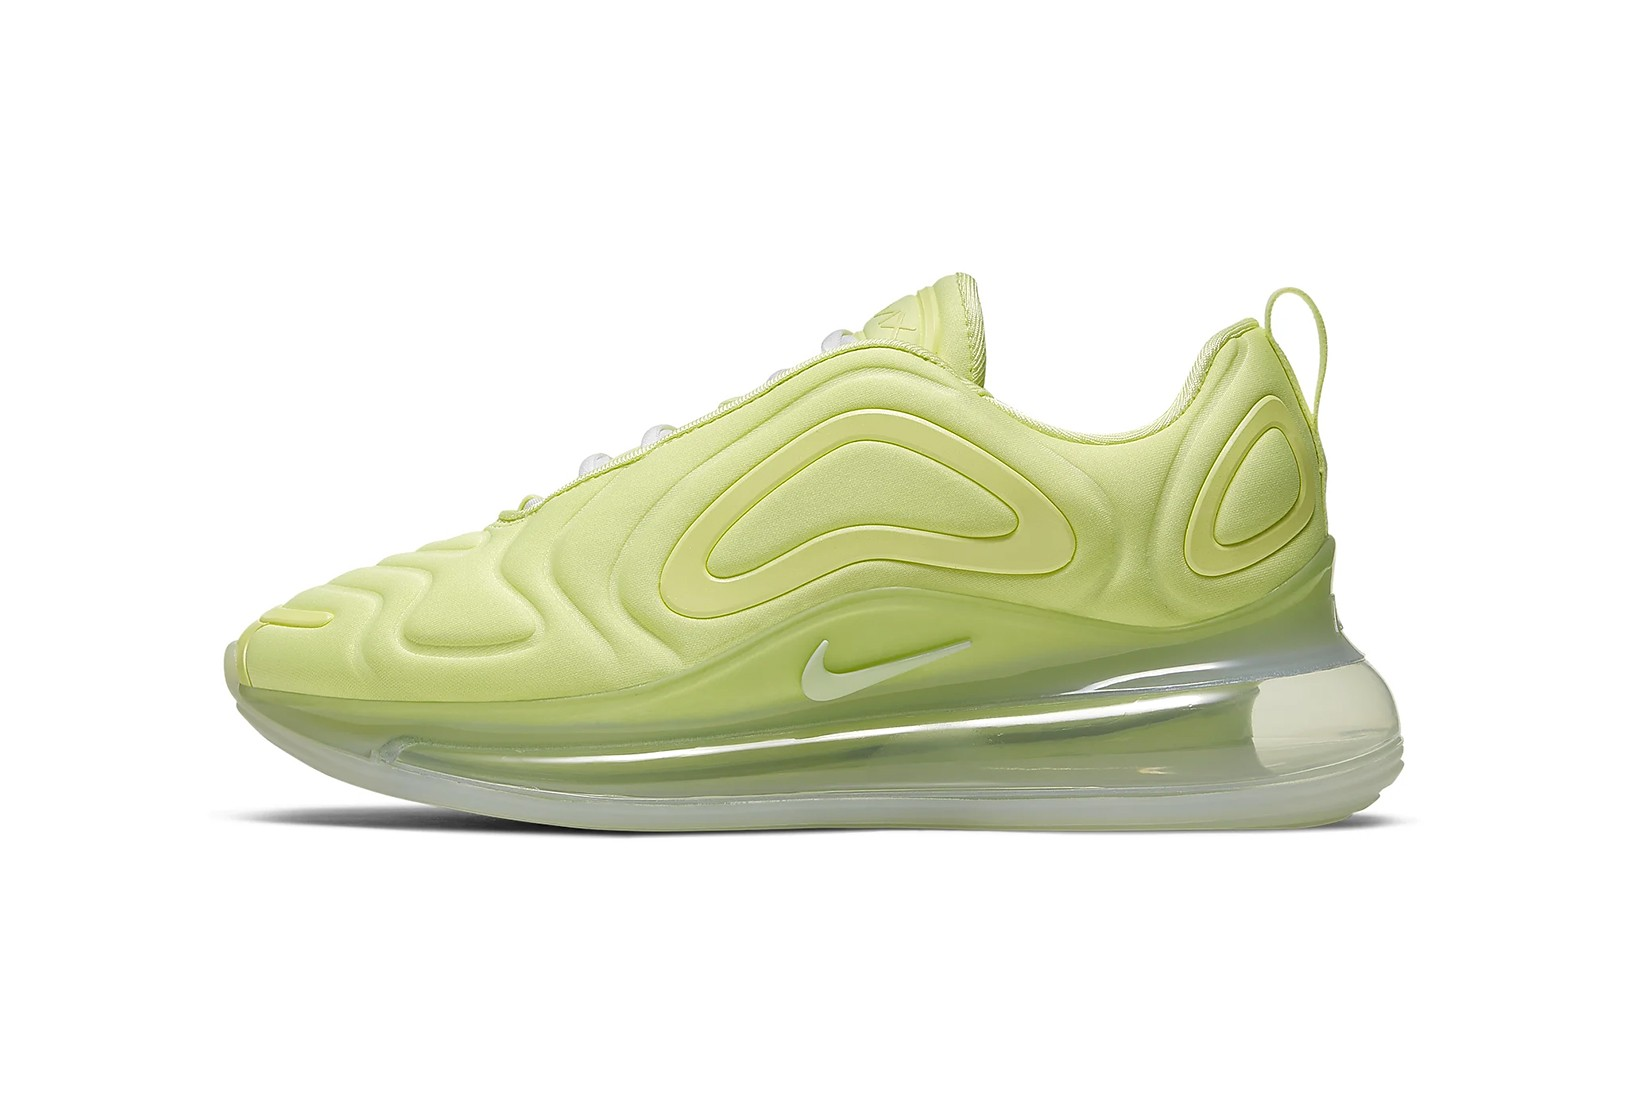 Nike's Air Max 720 In Two Monochromatic